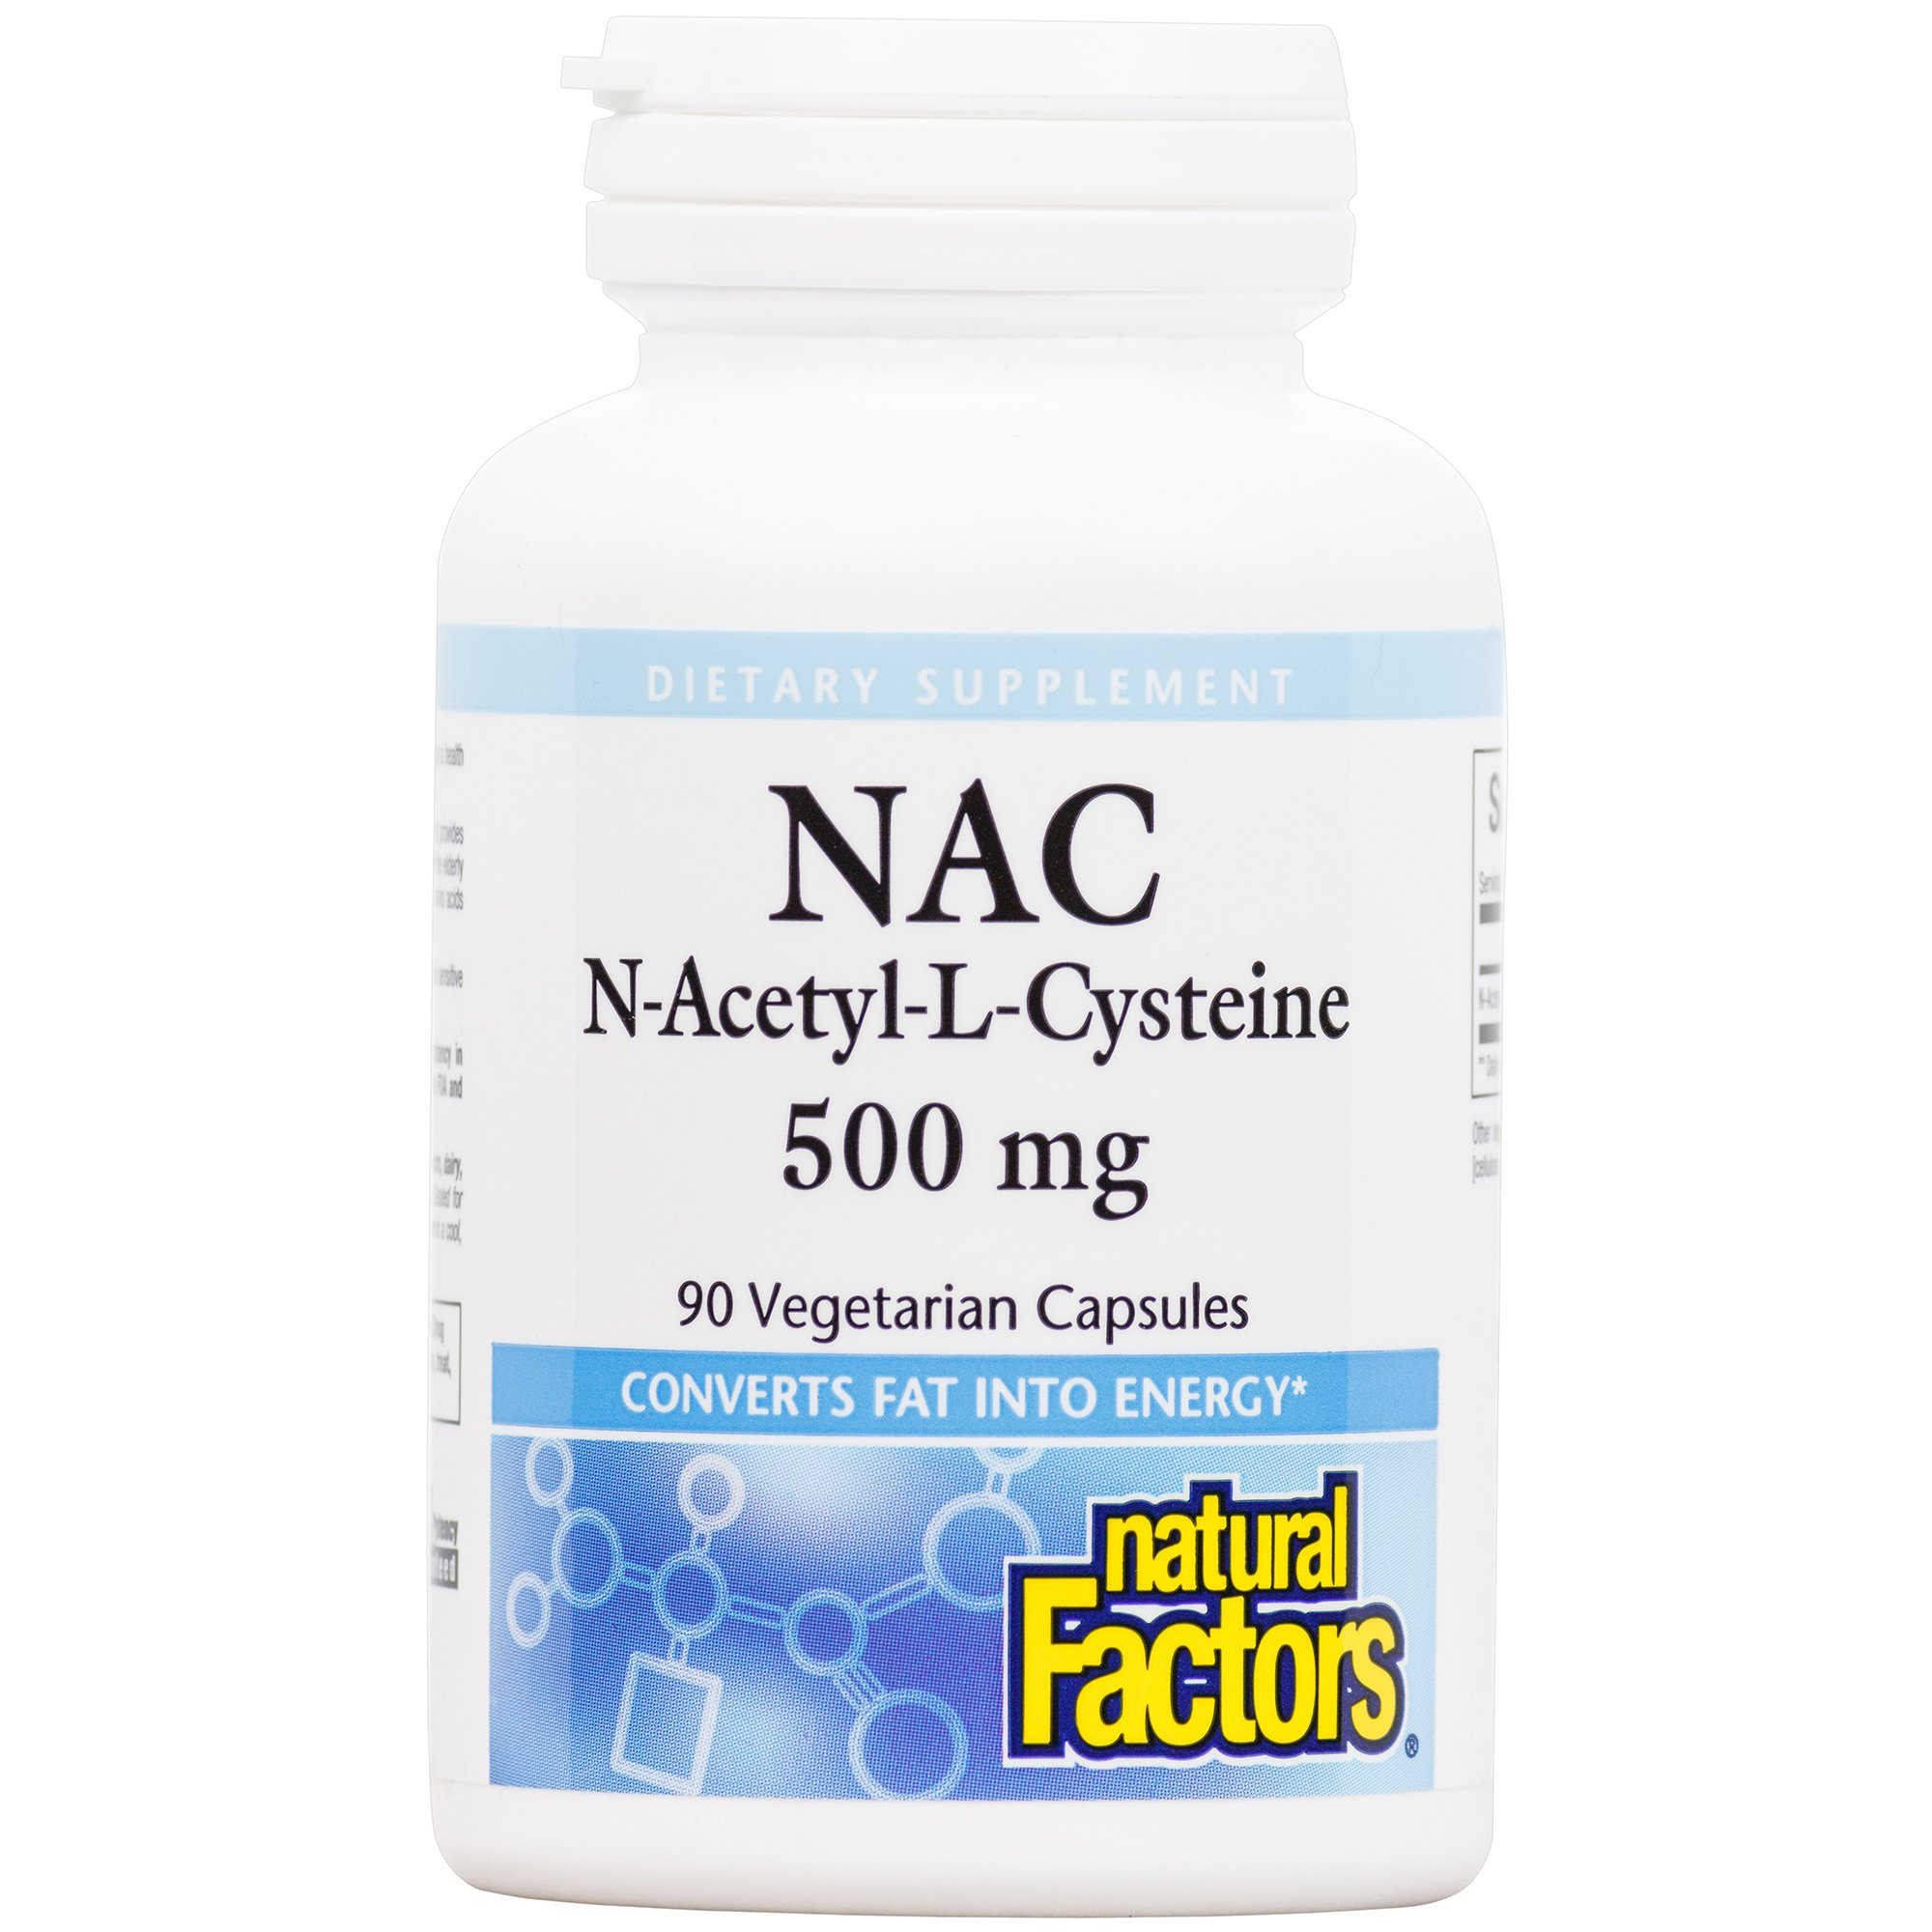 Natural Factors - N-Acetyl-L-Cysteine 500mg, Supports Antioxidant Activity & Converting Fat to Energy, Gluten Free, 90 Vegetarian Capsules